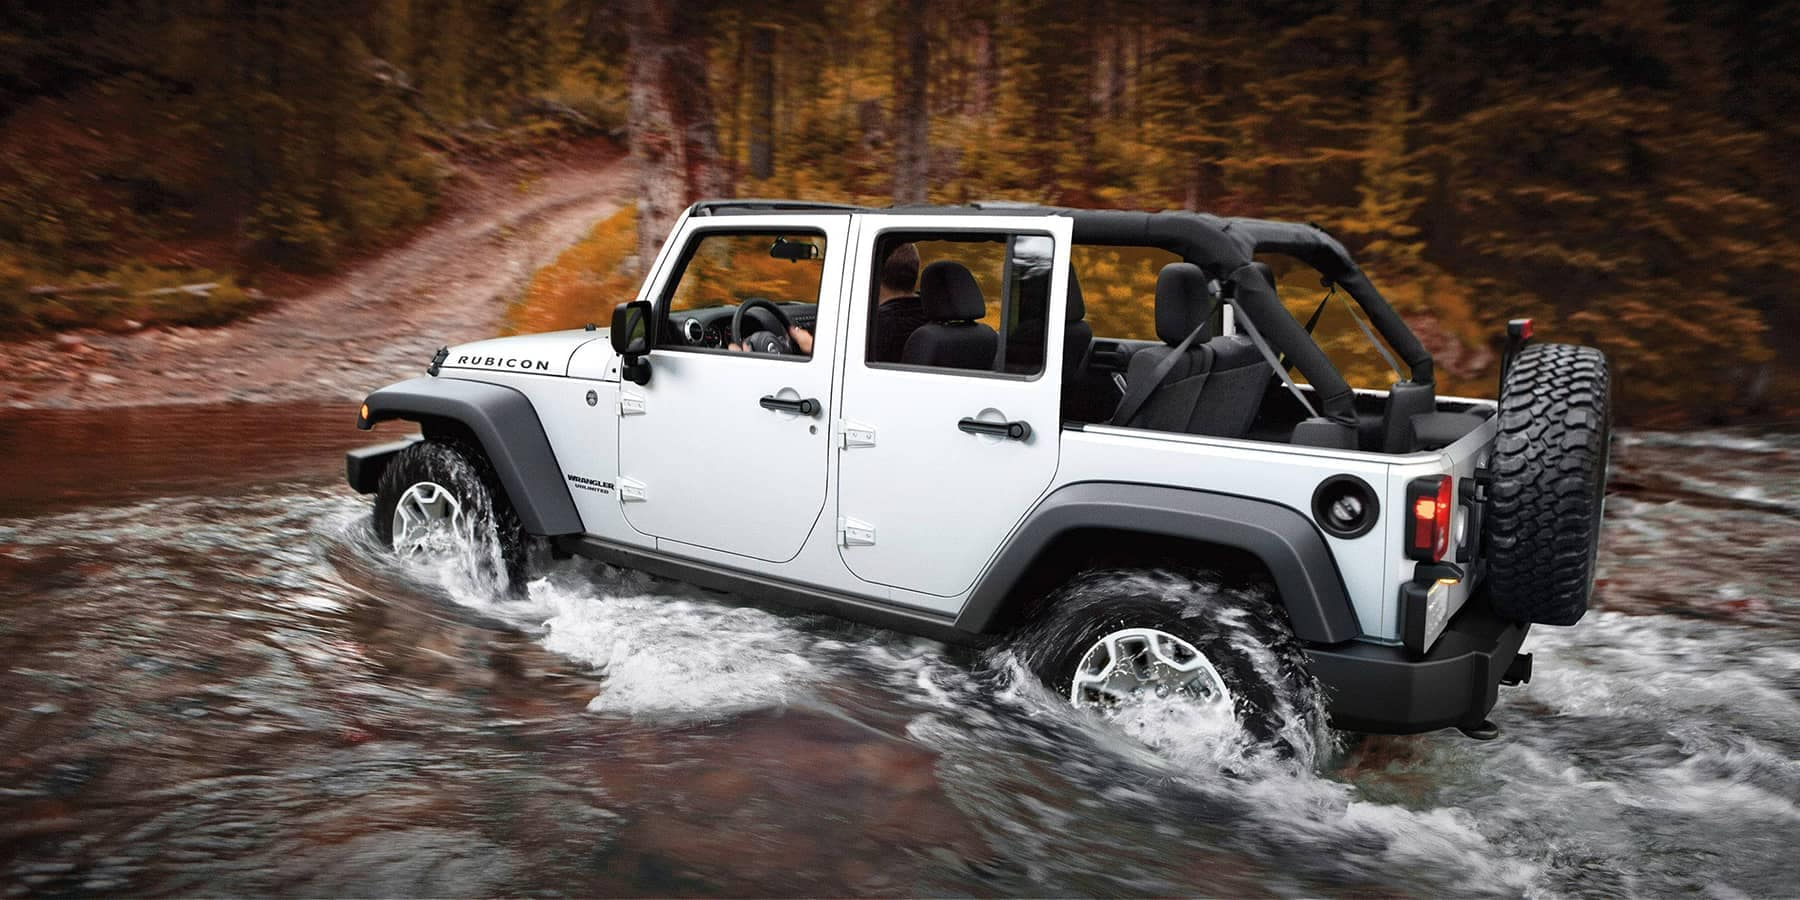 2017-Jeep-Wrangler-Unlimited-Gallery-Capability-Water.jpg.image.2880